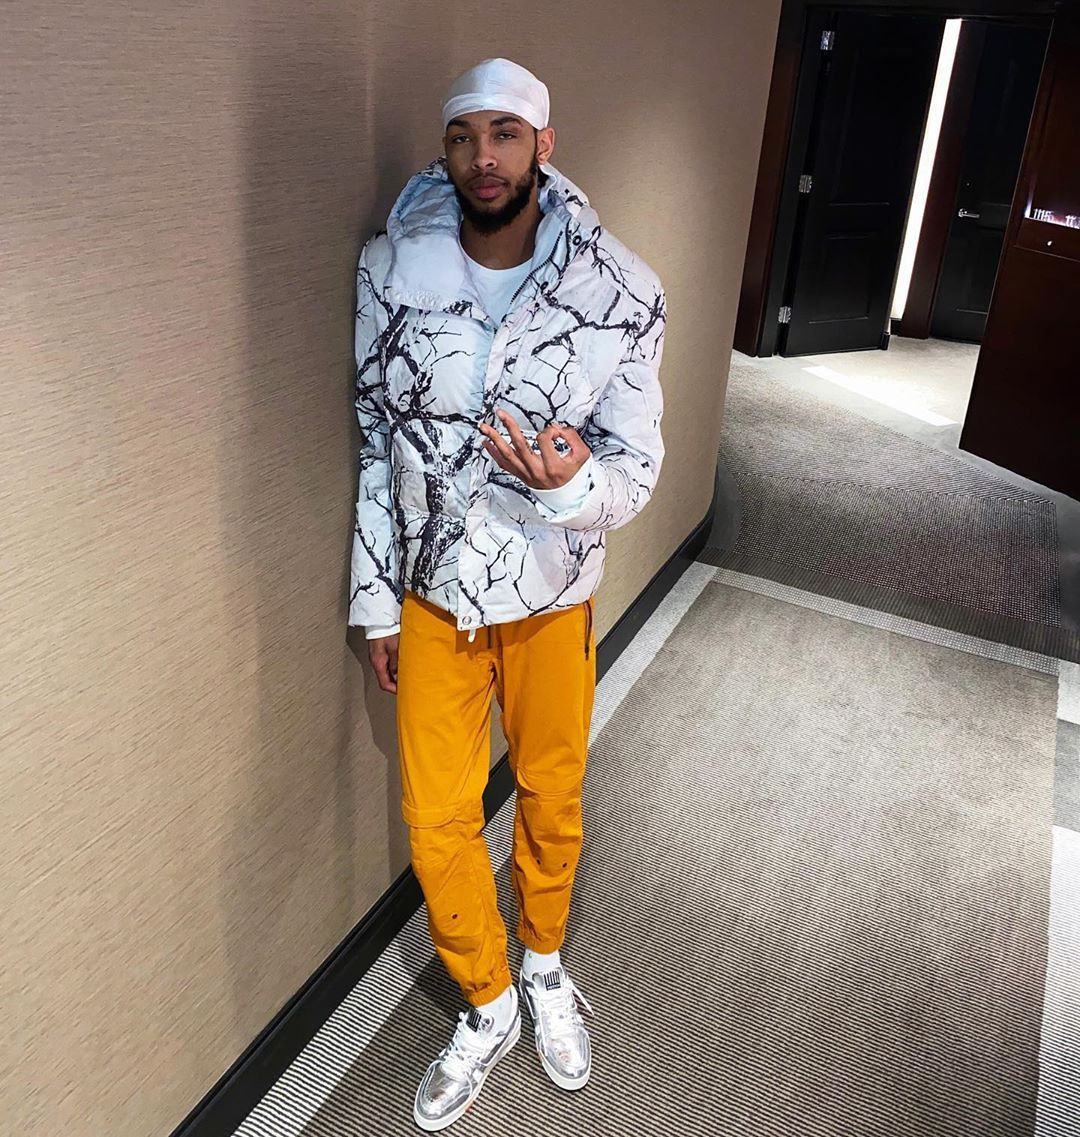 Brandon X Ingram On Instagram Still Still In 2020 Nba Outfit Strong Woman Tattoos Beautiful Womens Sweaters